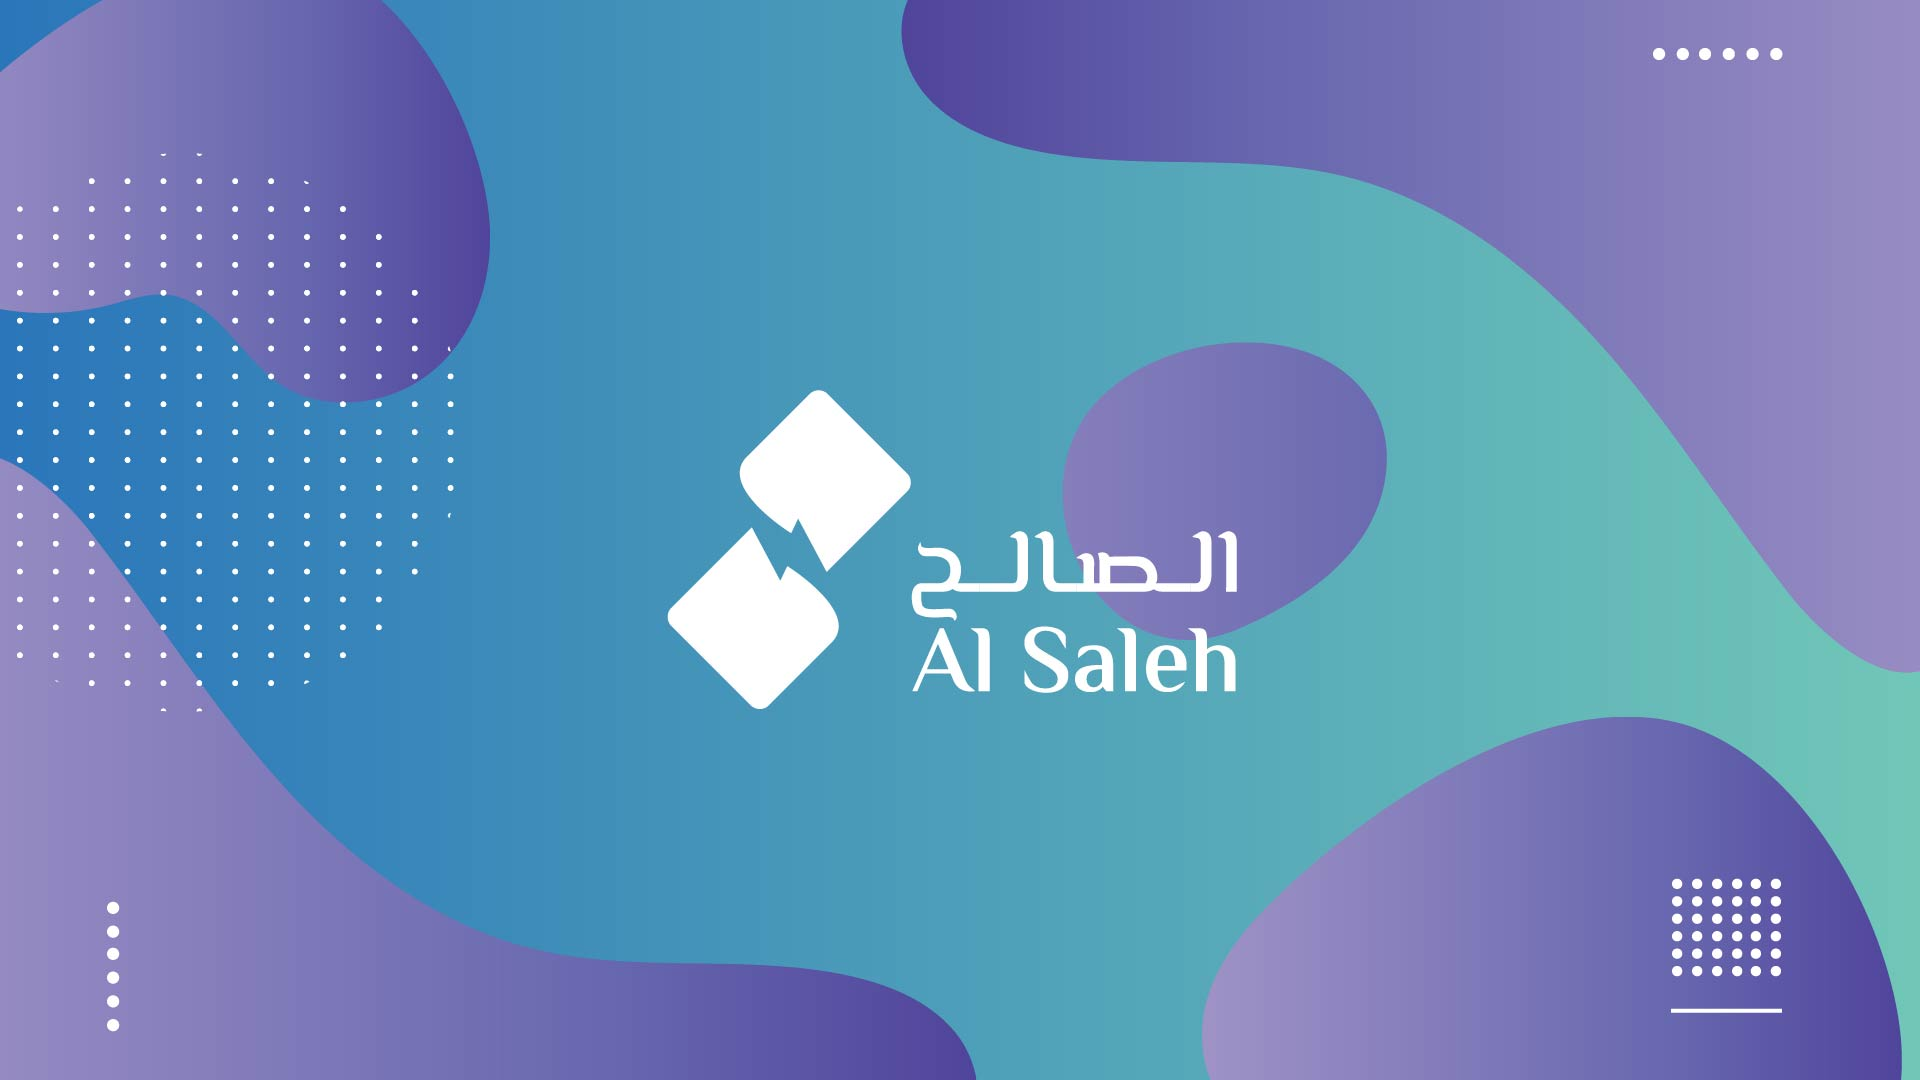 al-saleh-new-logo